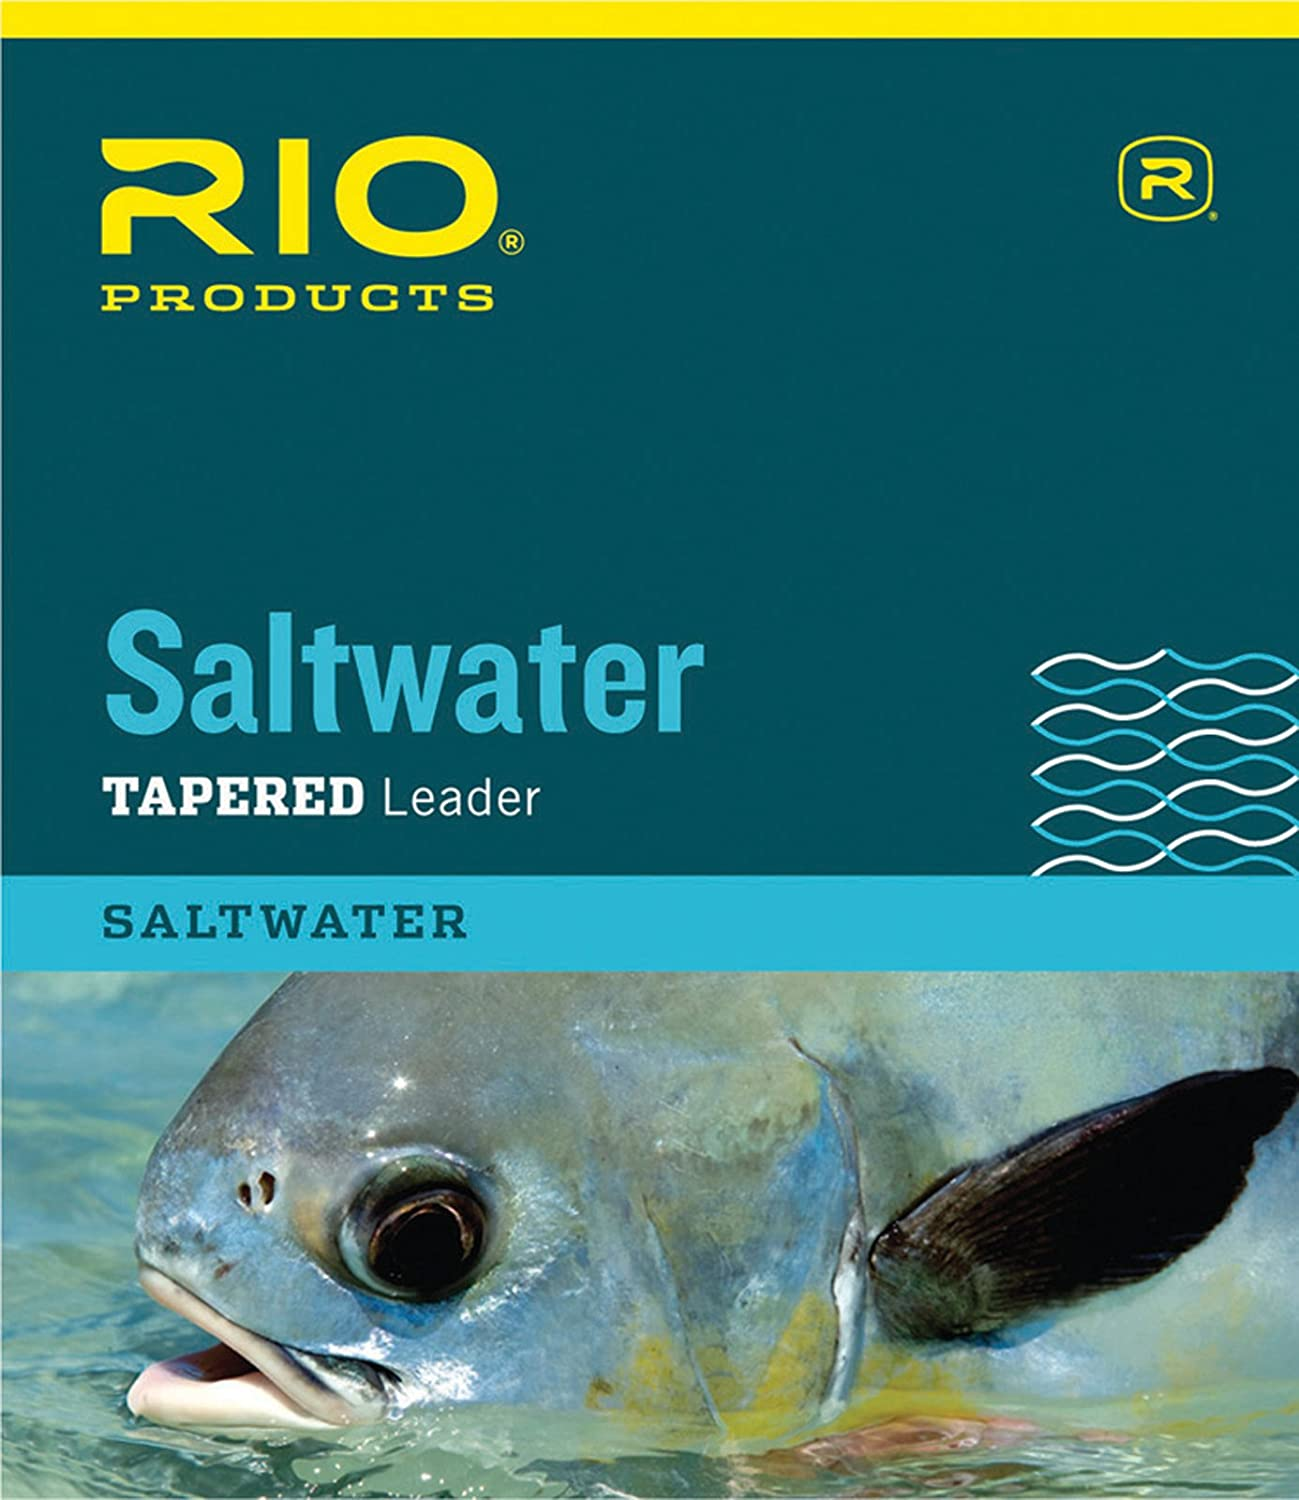 RIO Products Saltwater Tapered Leader 10 30Lb